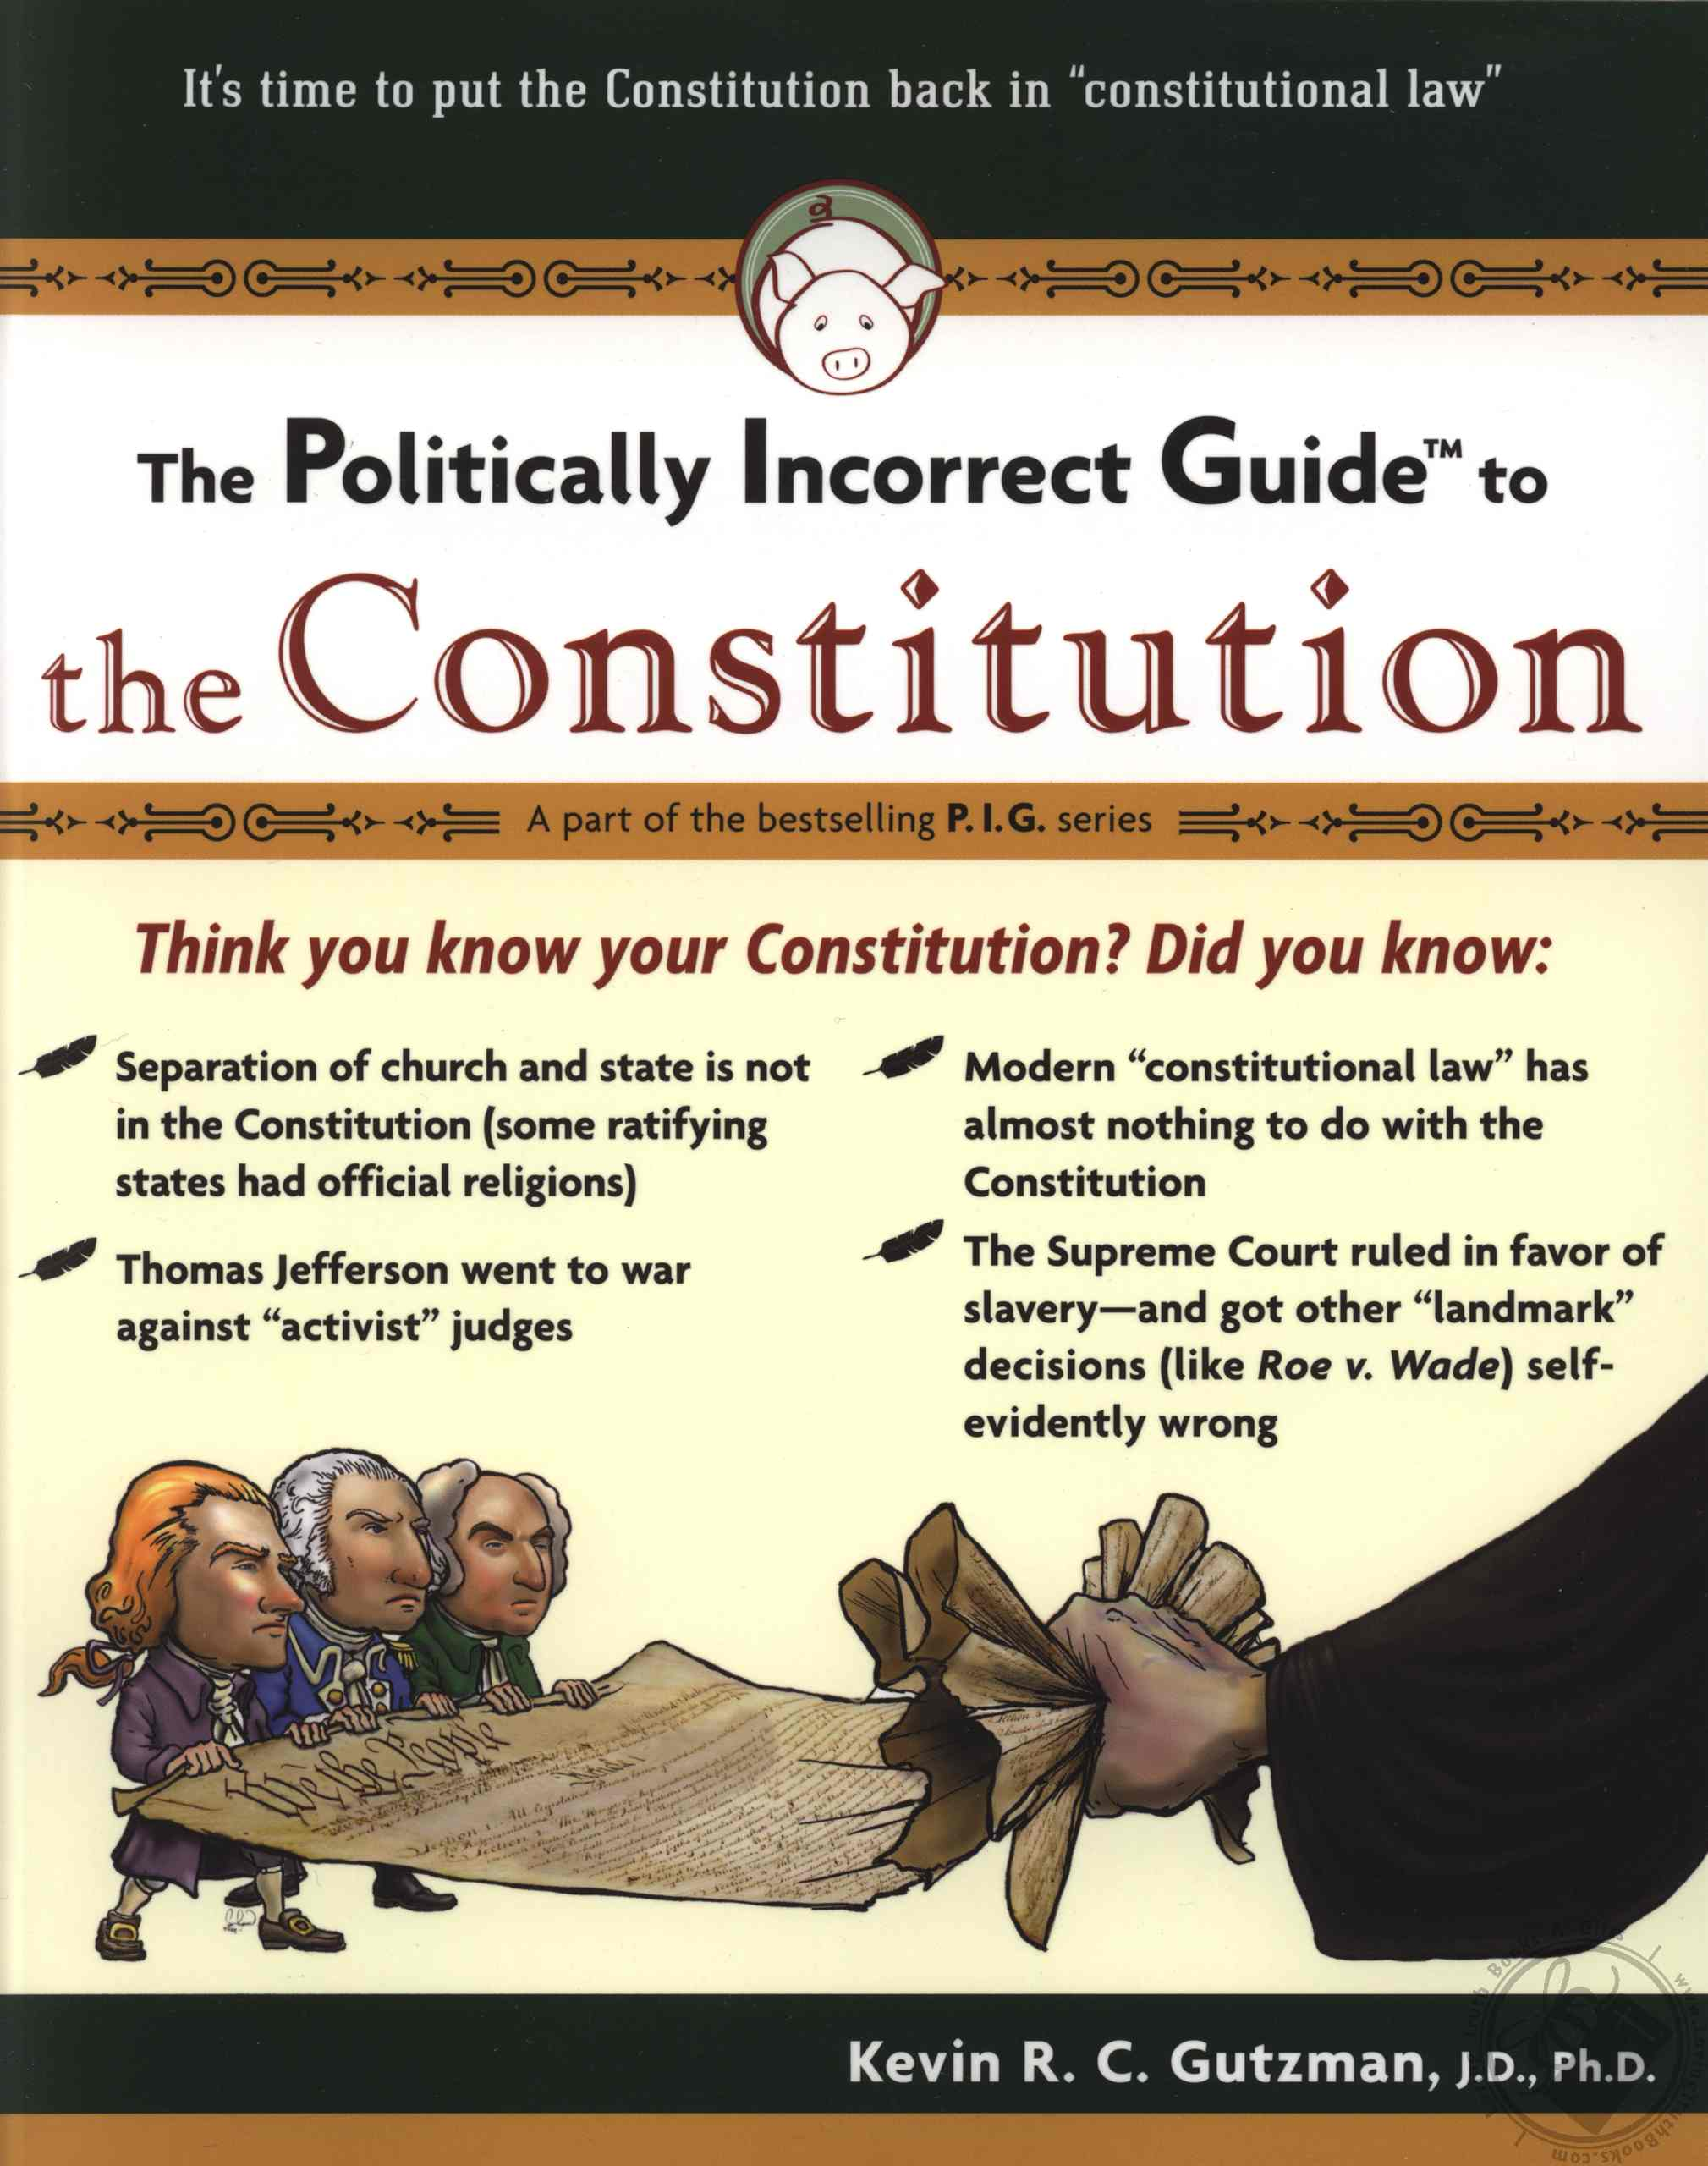 The Politically Incorrect Guide to the Constitution constitution, government